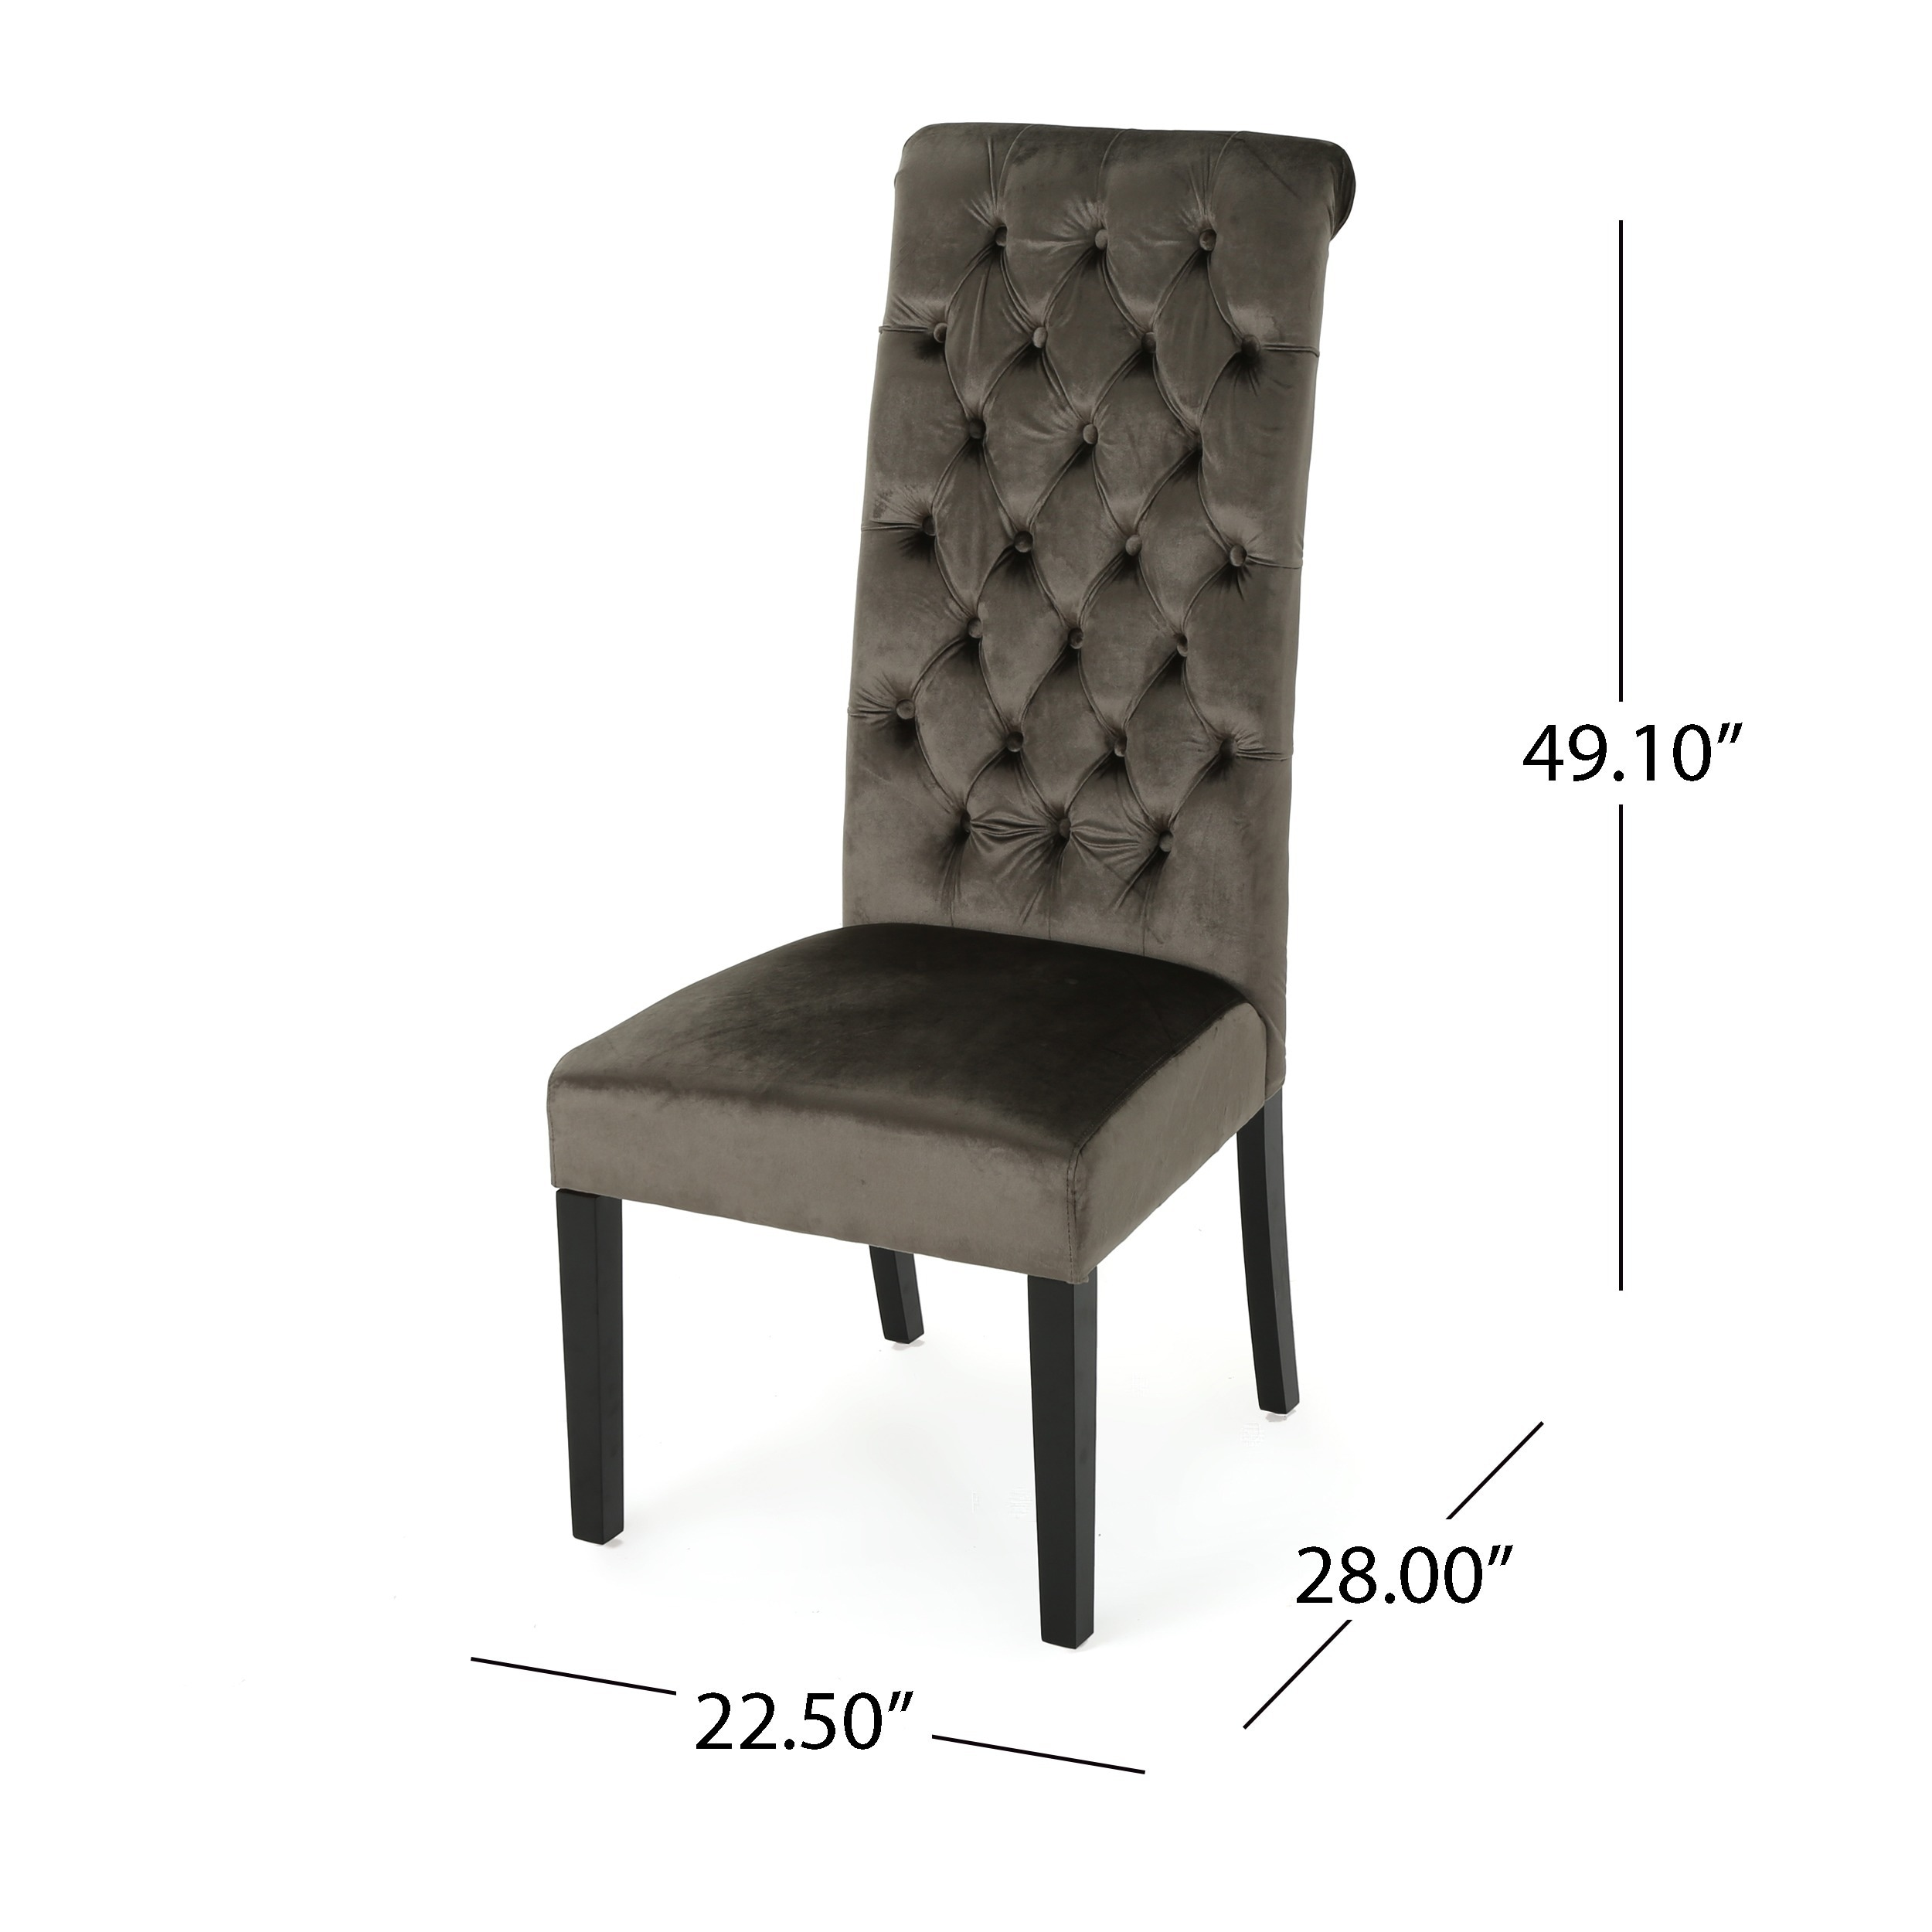 tall back chairs desk no wheels shop leorah tufted velvet dining chair set of 2 by christopher knight home on sale free shipping today overstock com 17809719